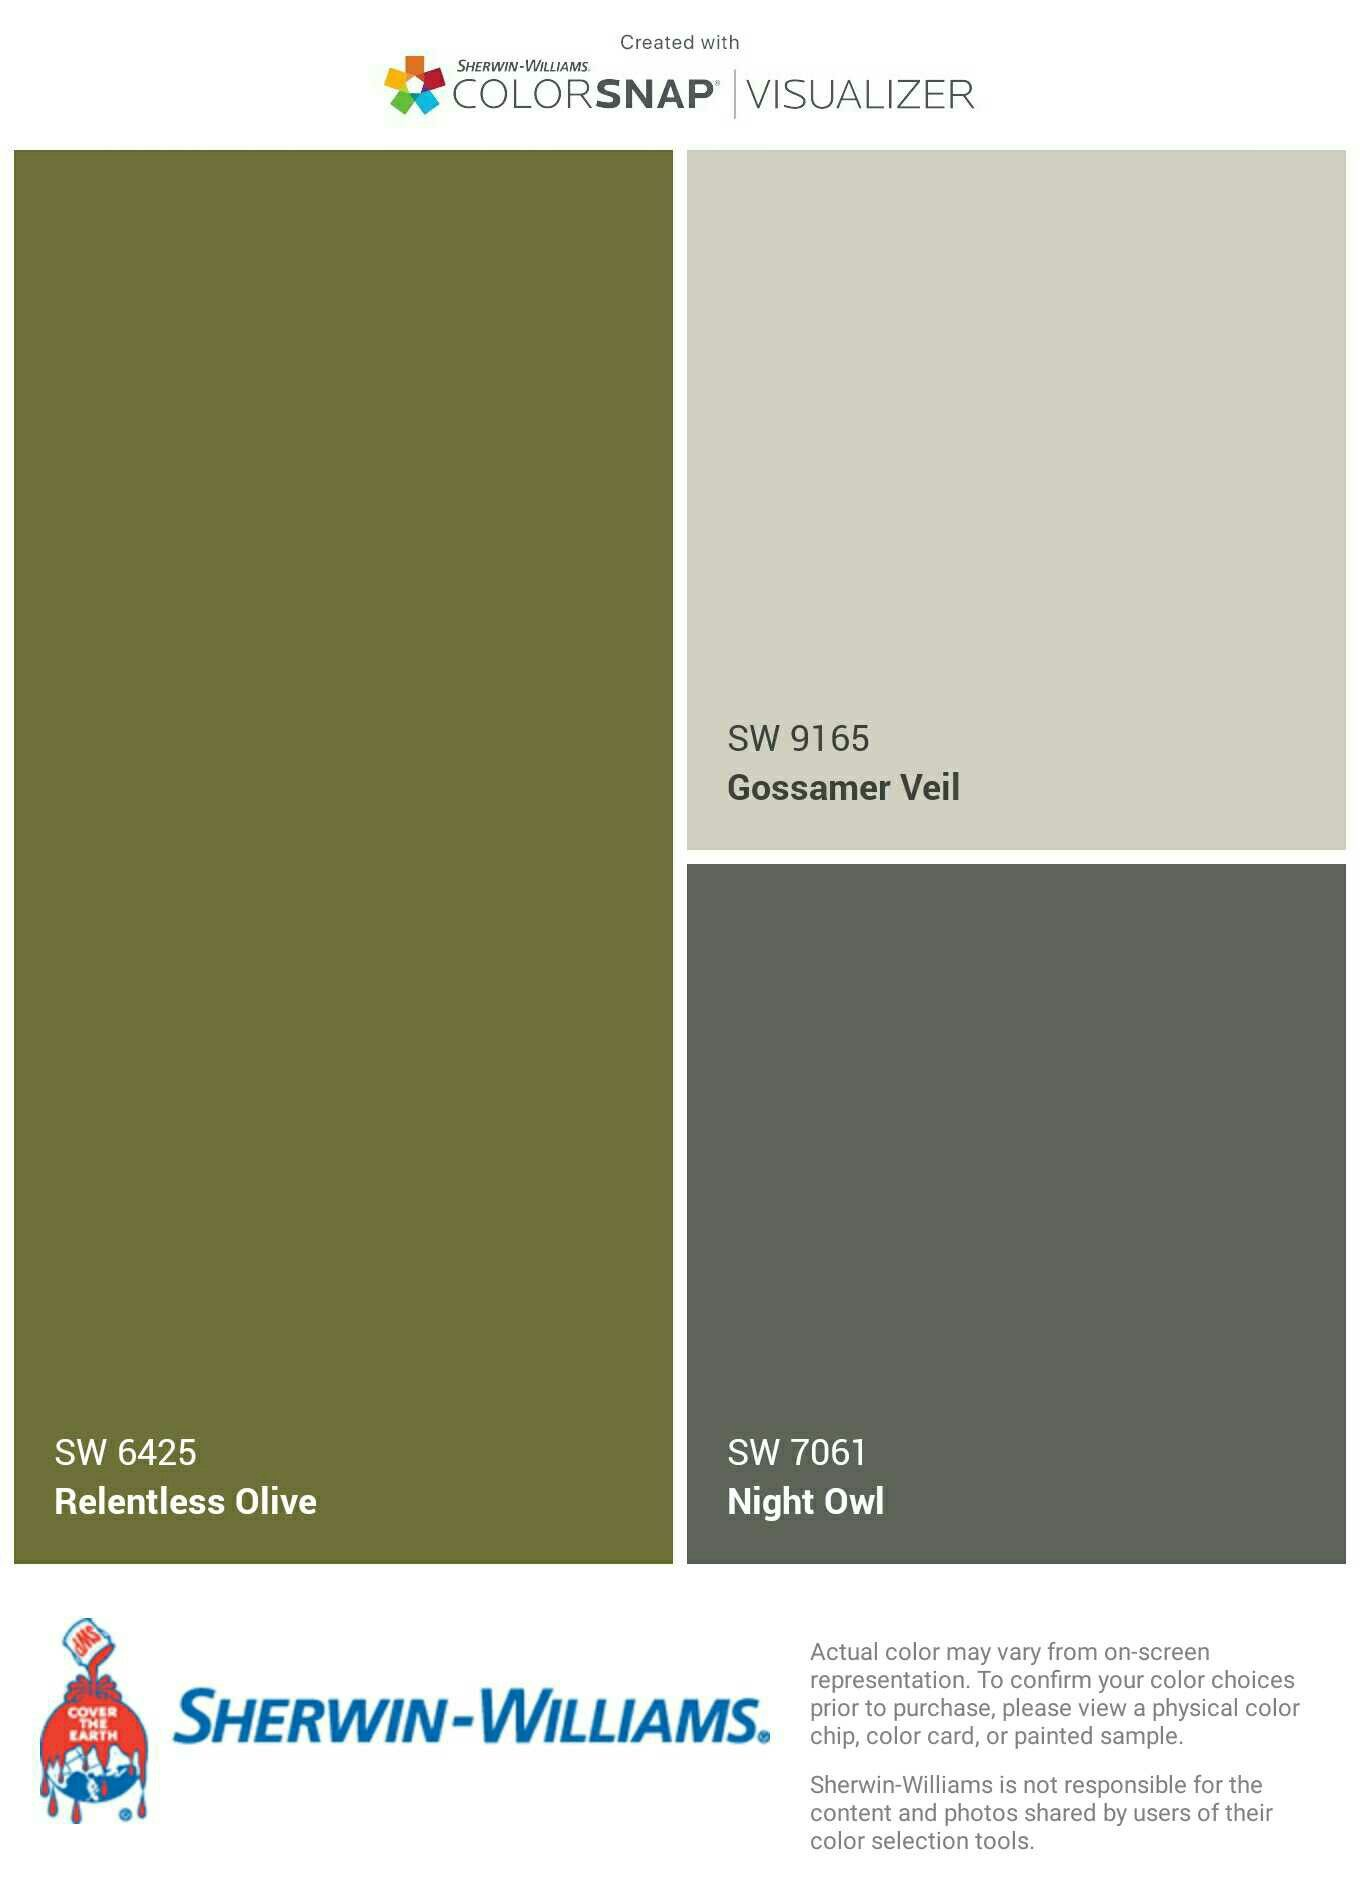 Sherwin Williams Color Palette I Just Created This Color Palette With The Sherwin Williams